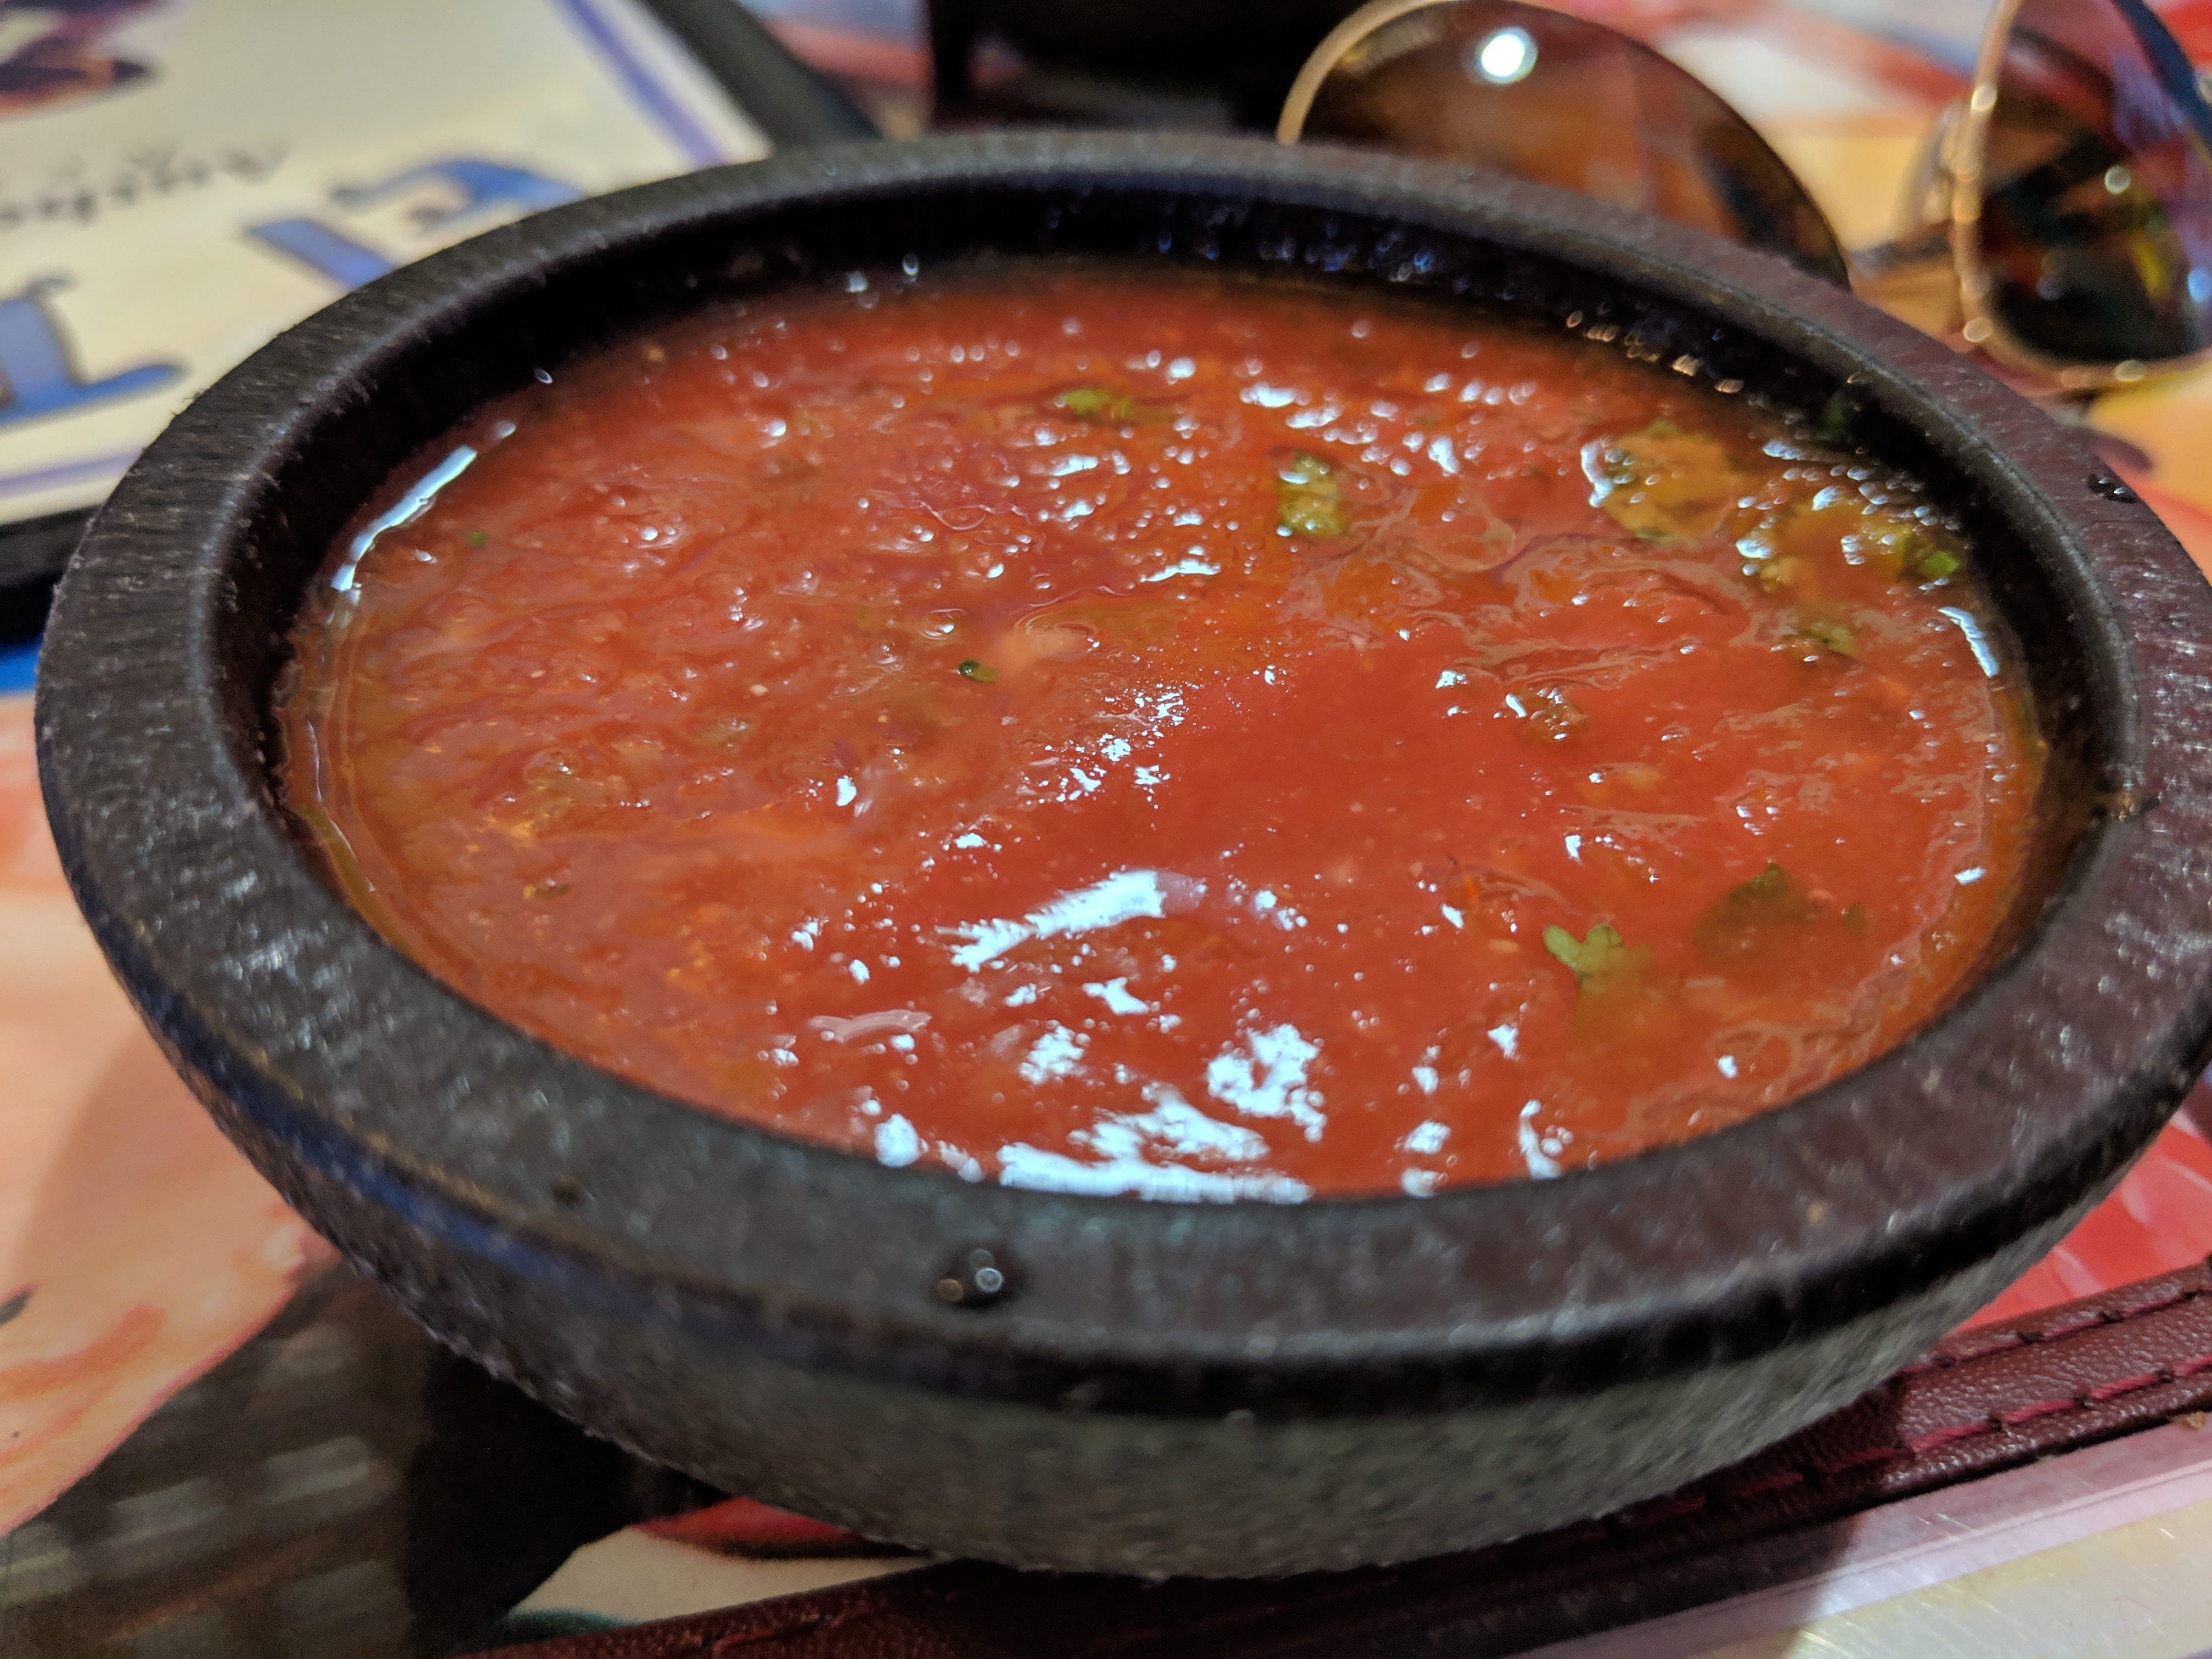 The free salsa at El Tapatio Authentic Mexican Restaurant.